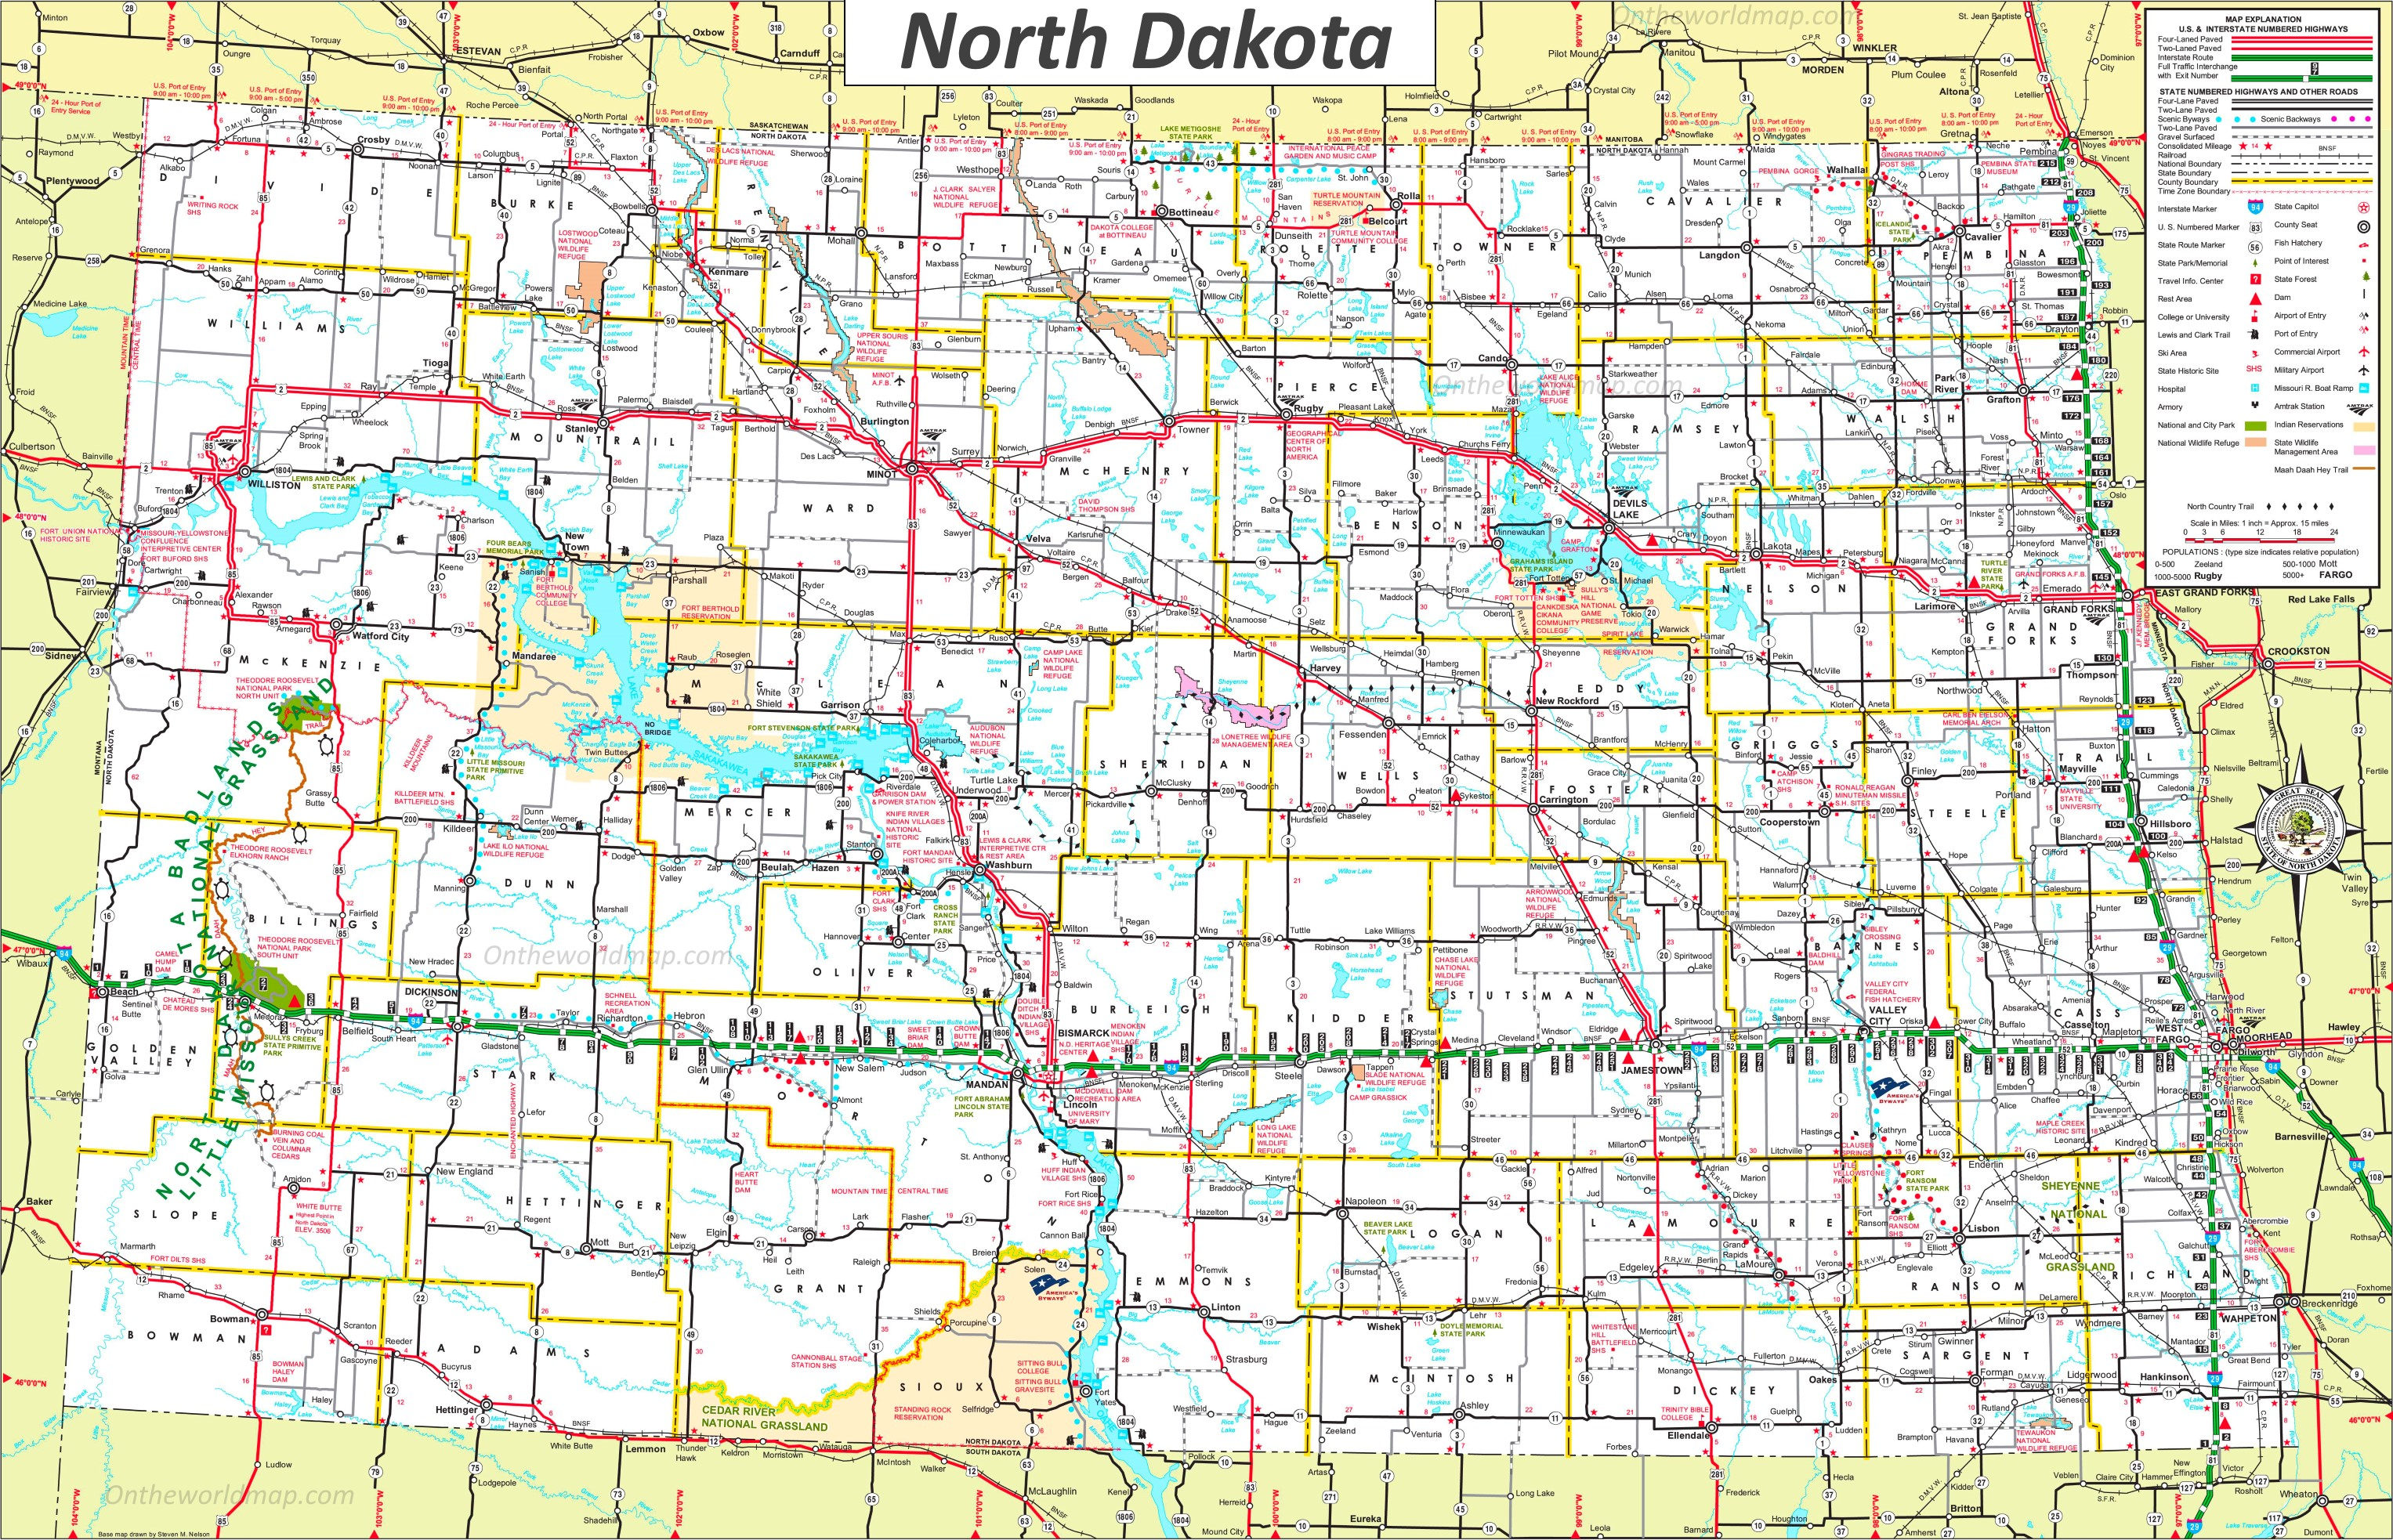 Large Detailed Tourist Map Of North Dakota With Cities And Towns - North dakota maps